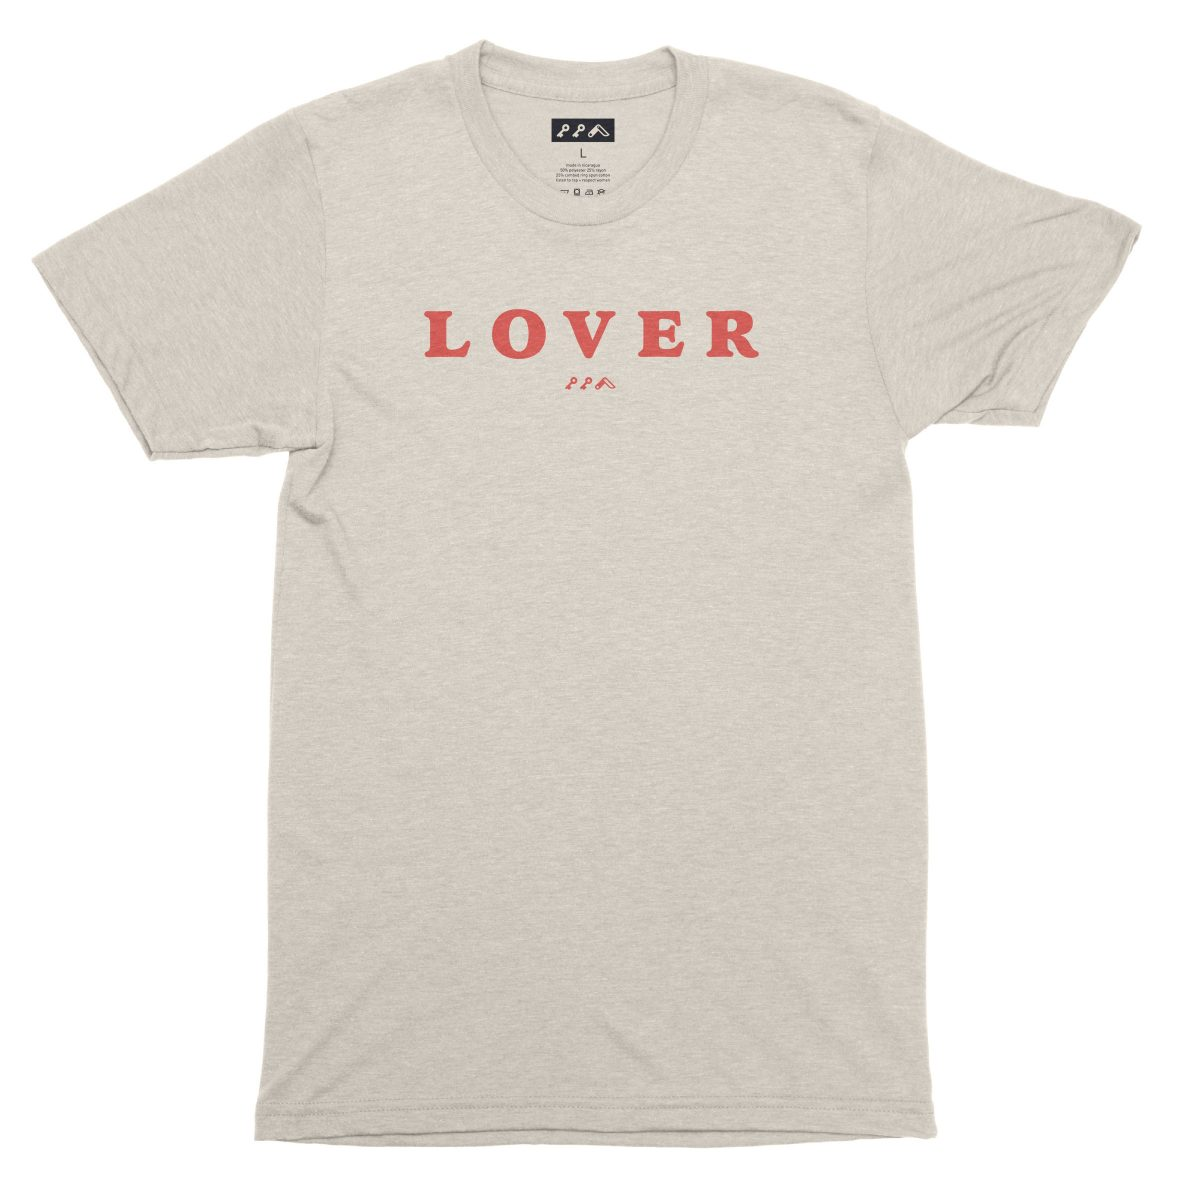 LOVER super soft unisex tri-blend t-shirt in oatmeal